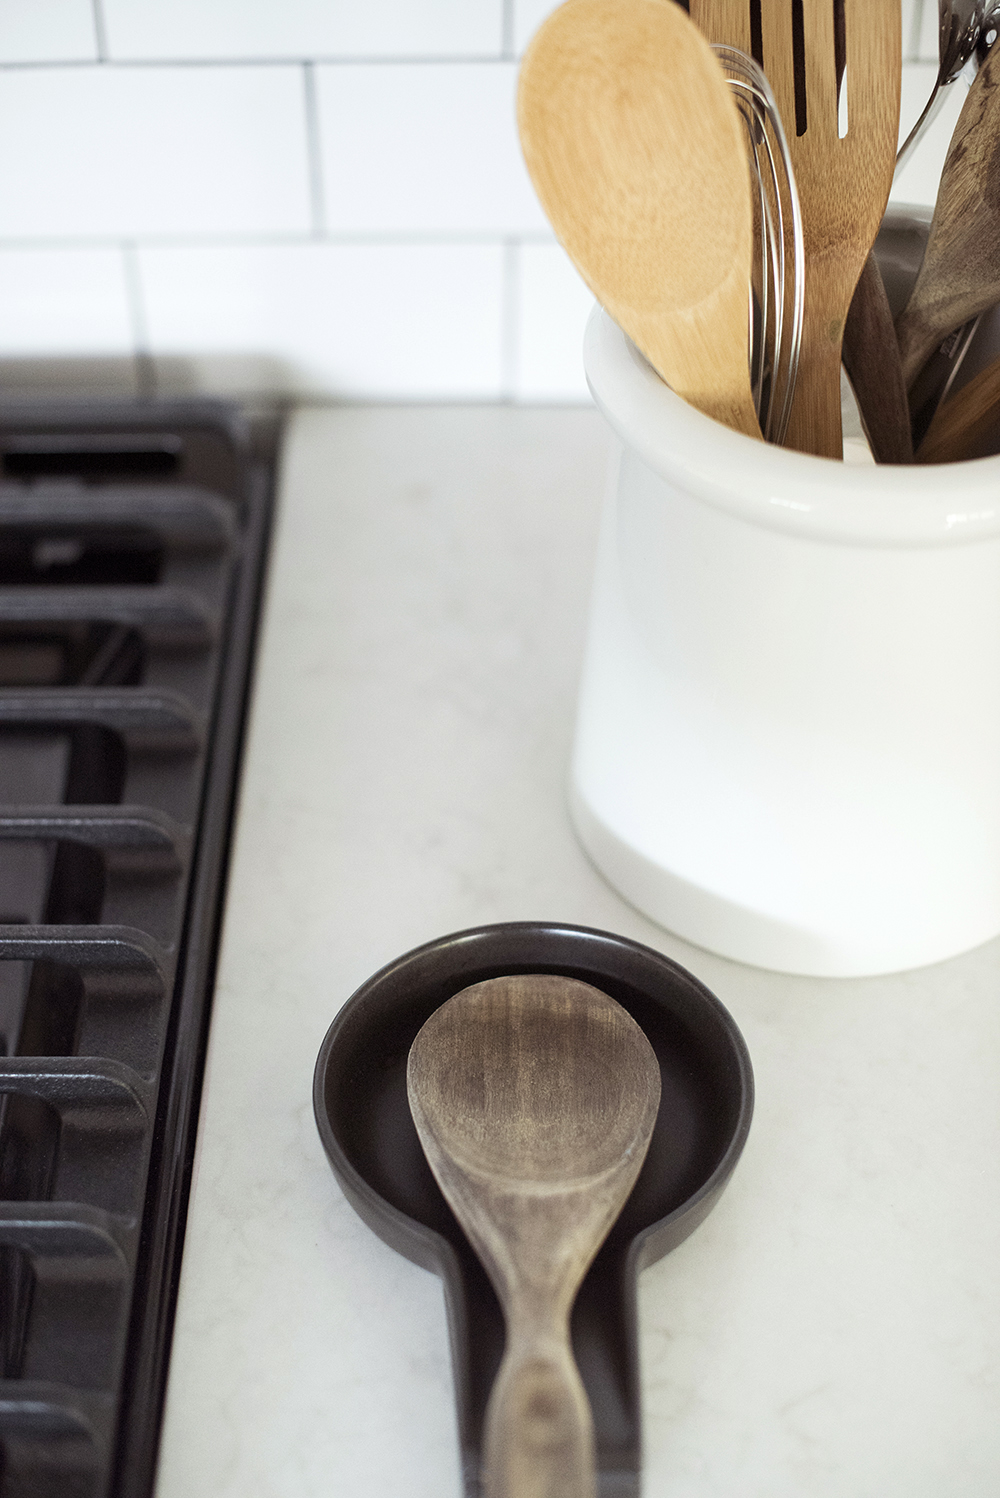 Giant Roundup : Kitchen Accessories \u0026 Utensils - Room for Tuesday